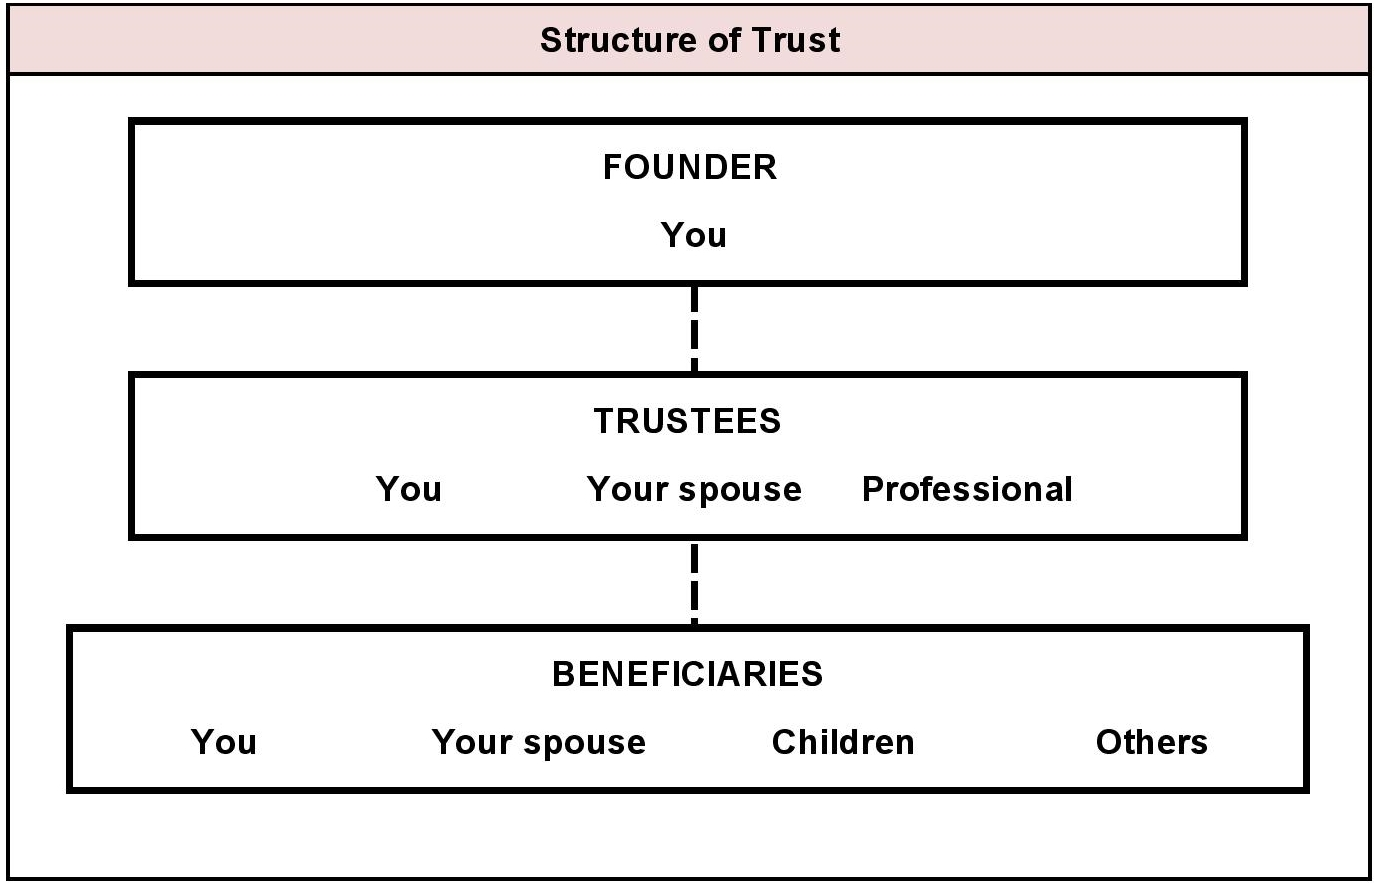 Trusts structure